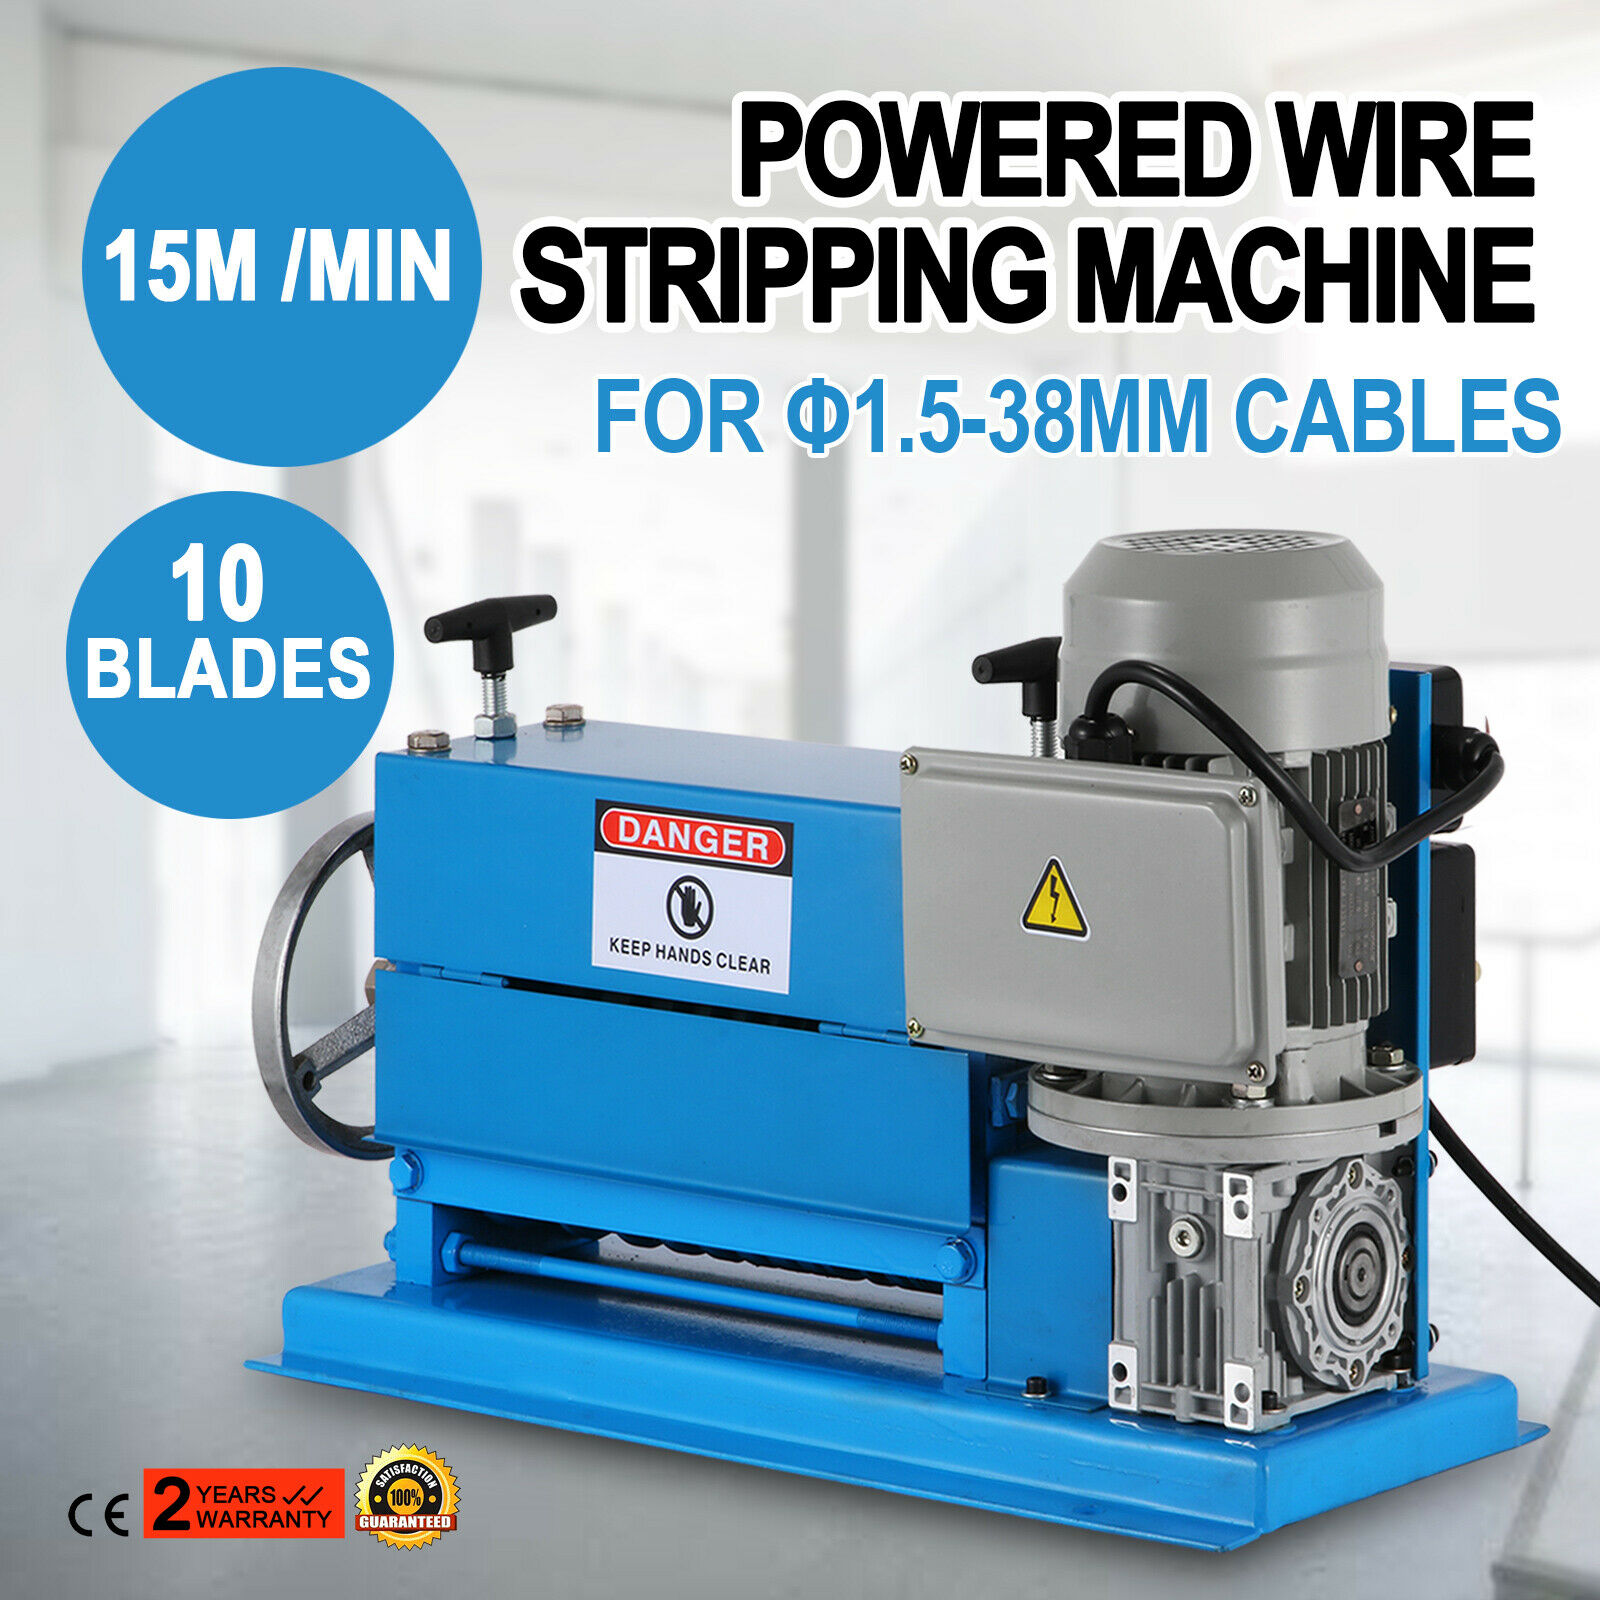 220V Portable Powered Electric Wire Stripping Machine Scrap Cable Stripper